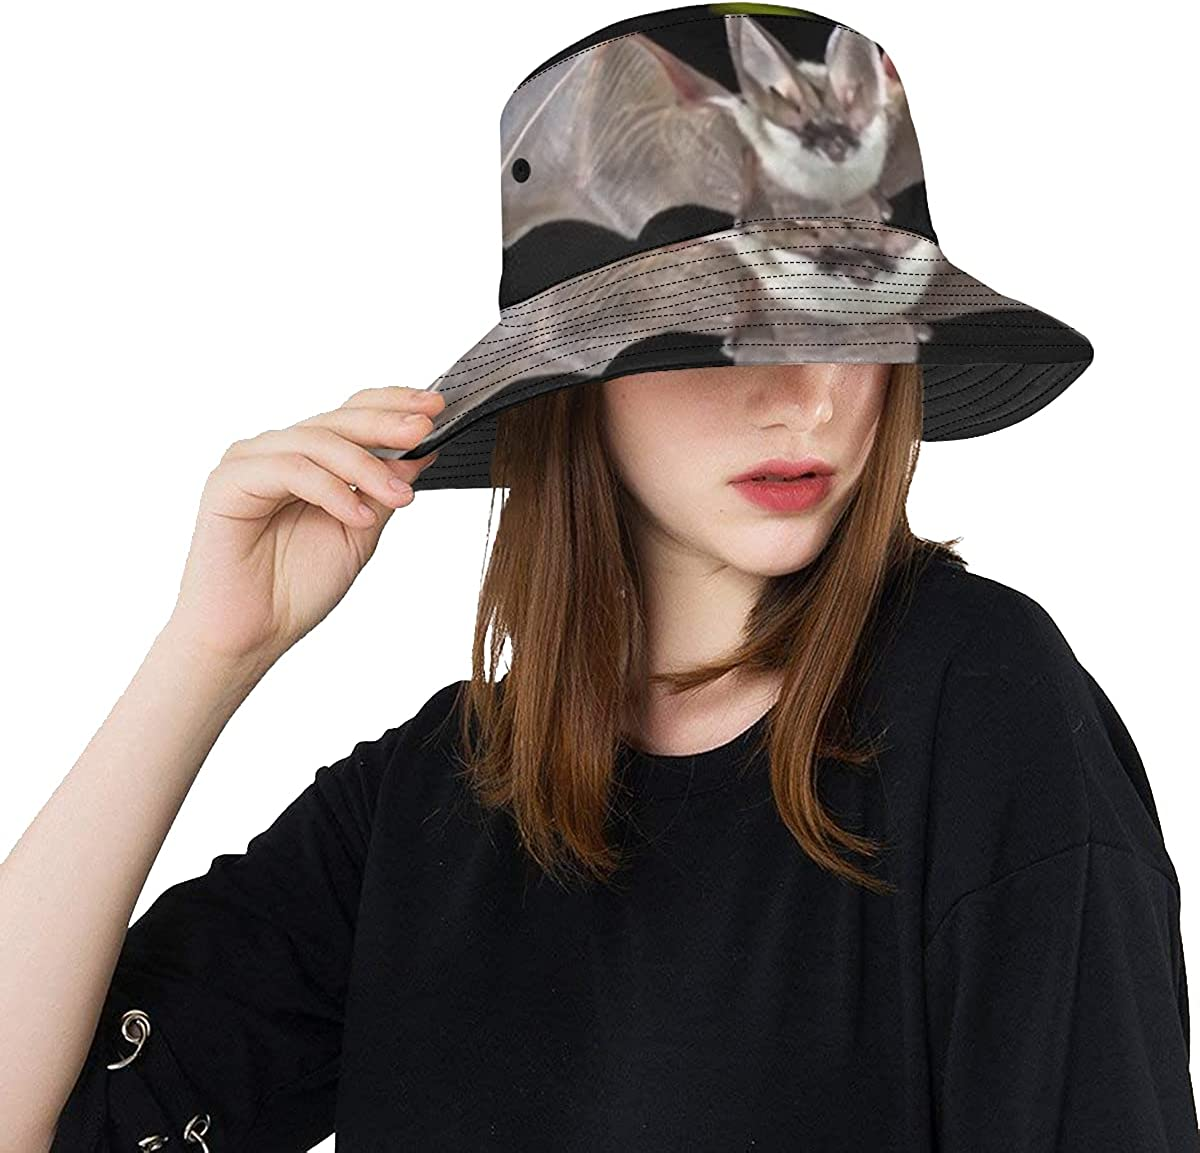 Unique Bucket Hat Flying Bat Casua Grey Forest High quality new Hunting price Longeared